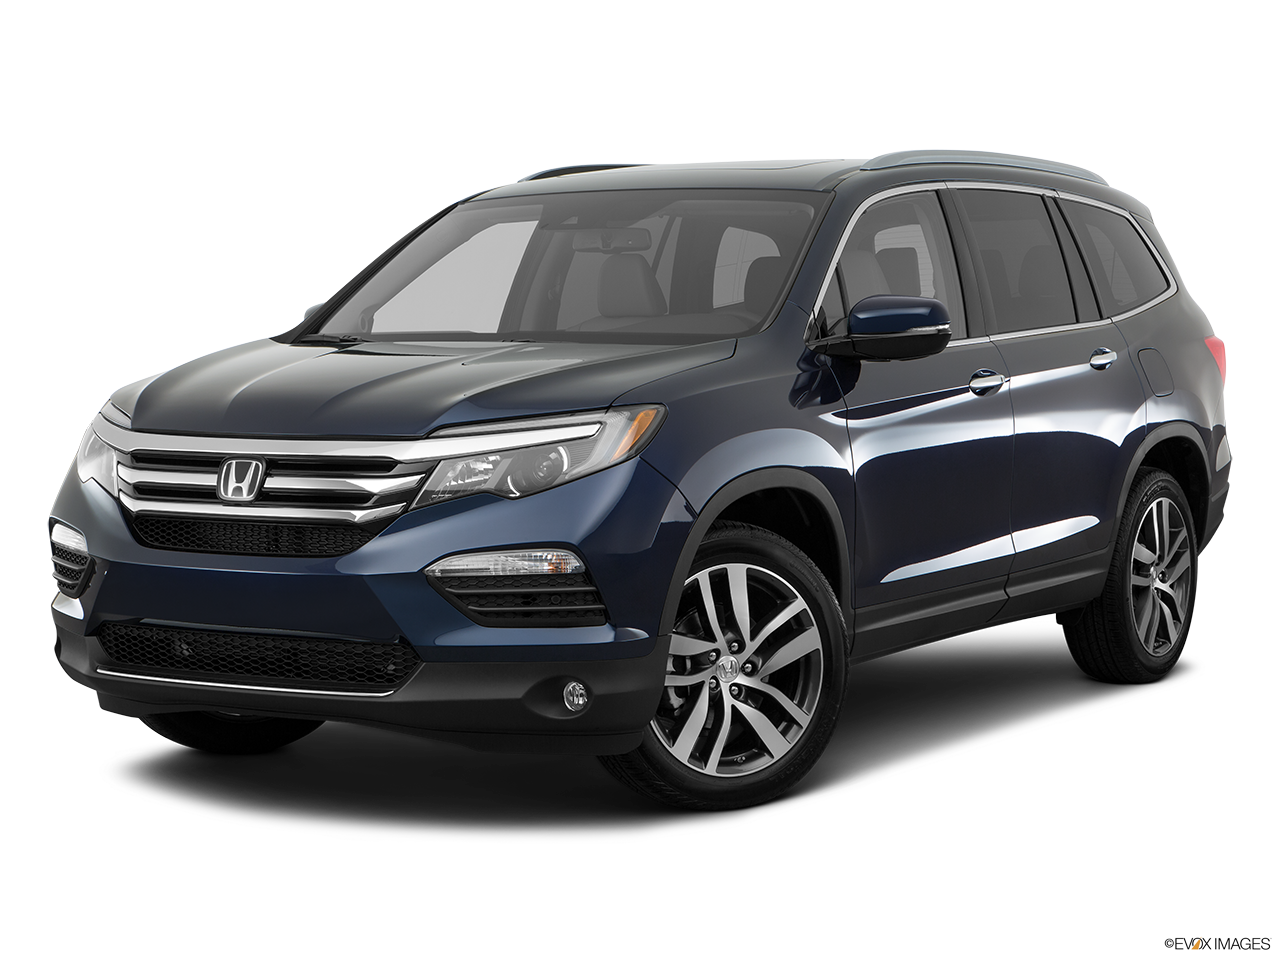 Test Drive A 2017 Honda Pilot at Honda of El Cajon near San Diego